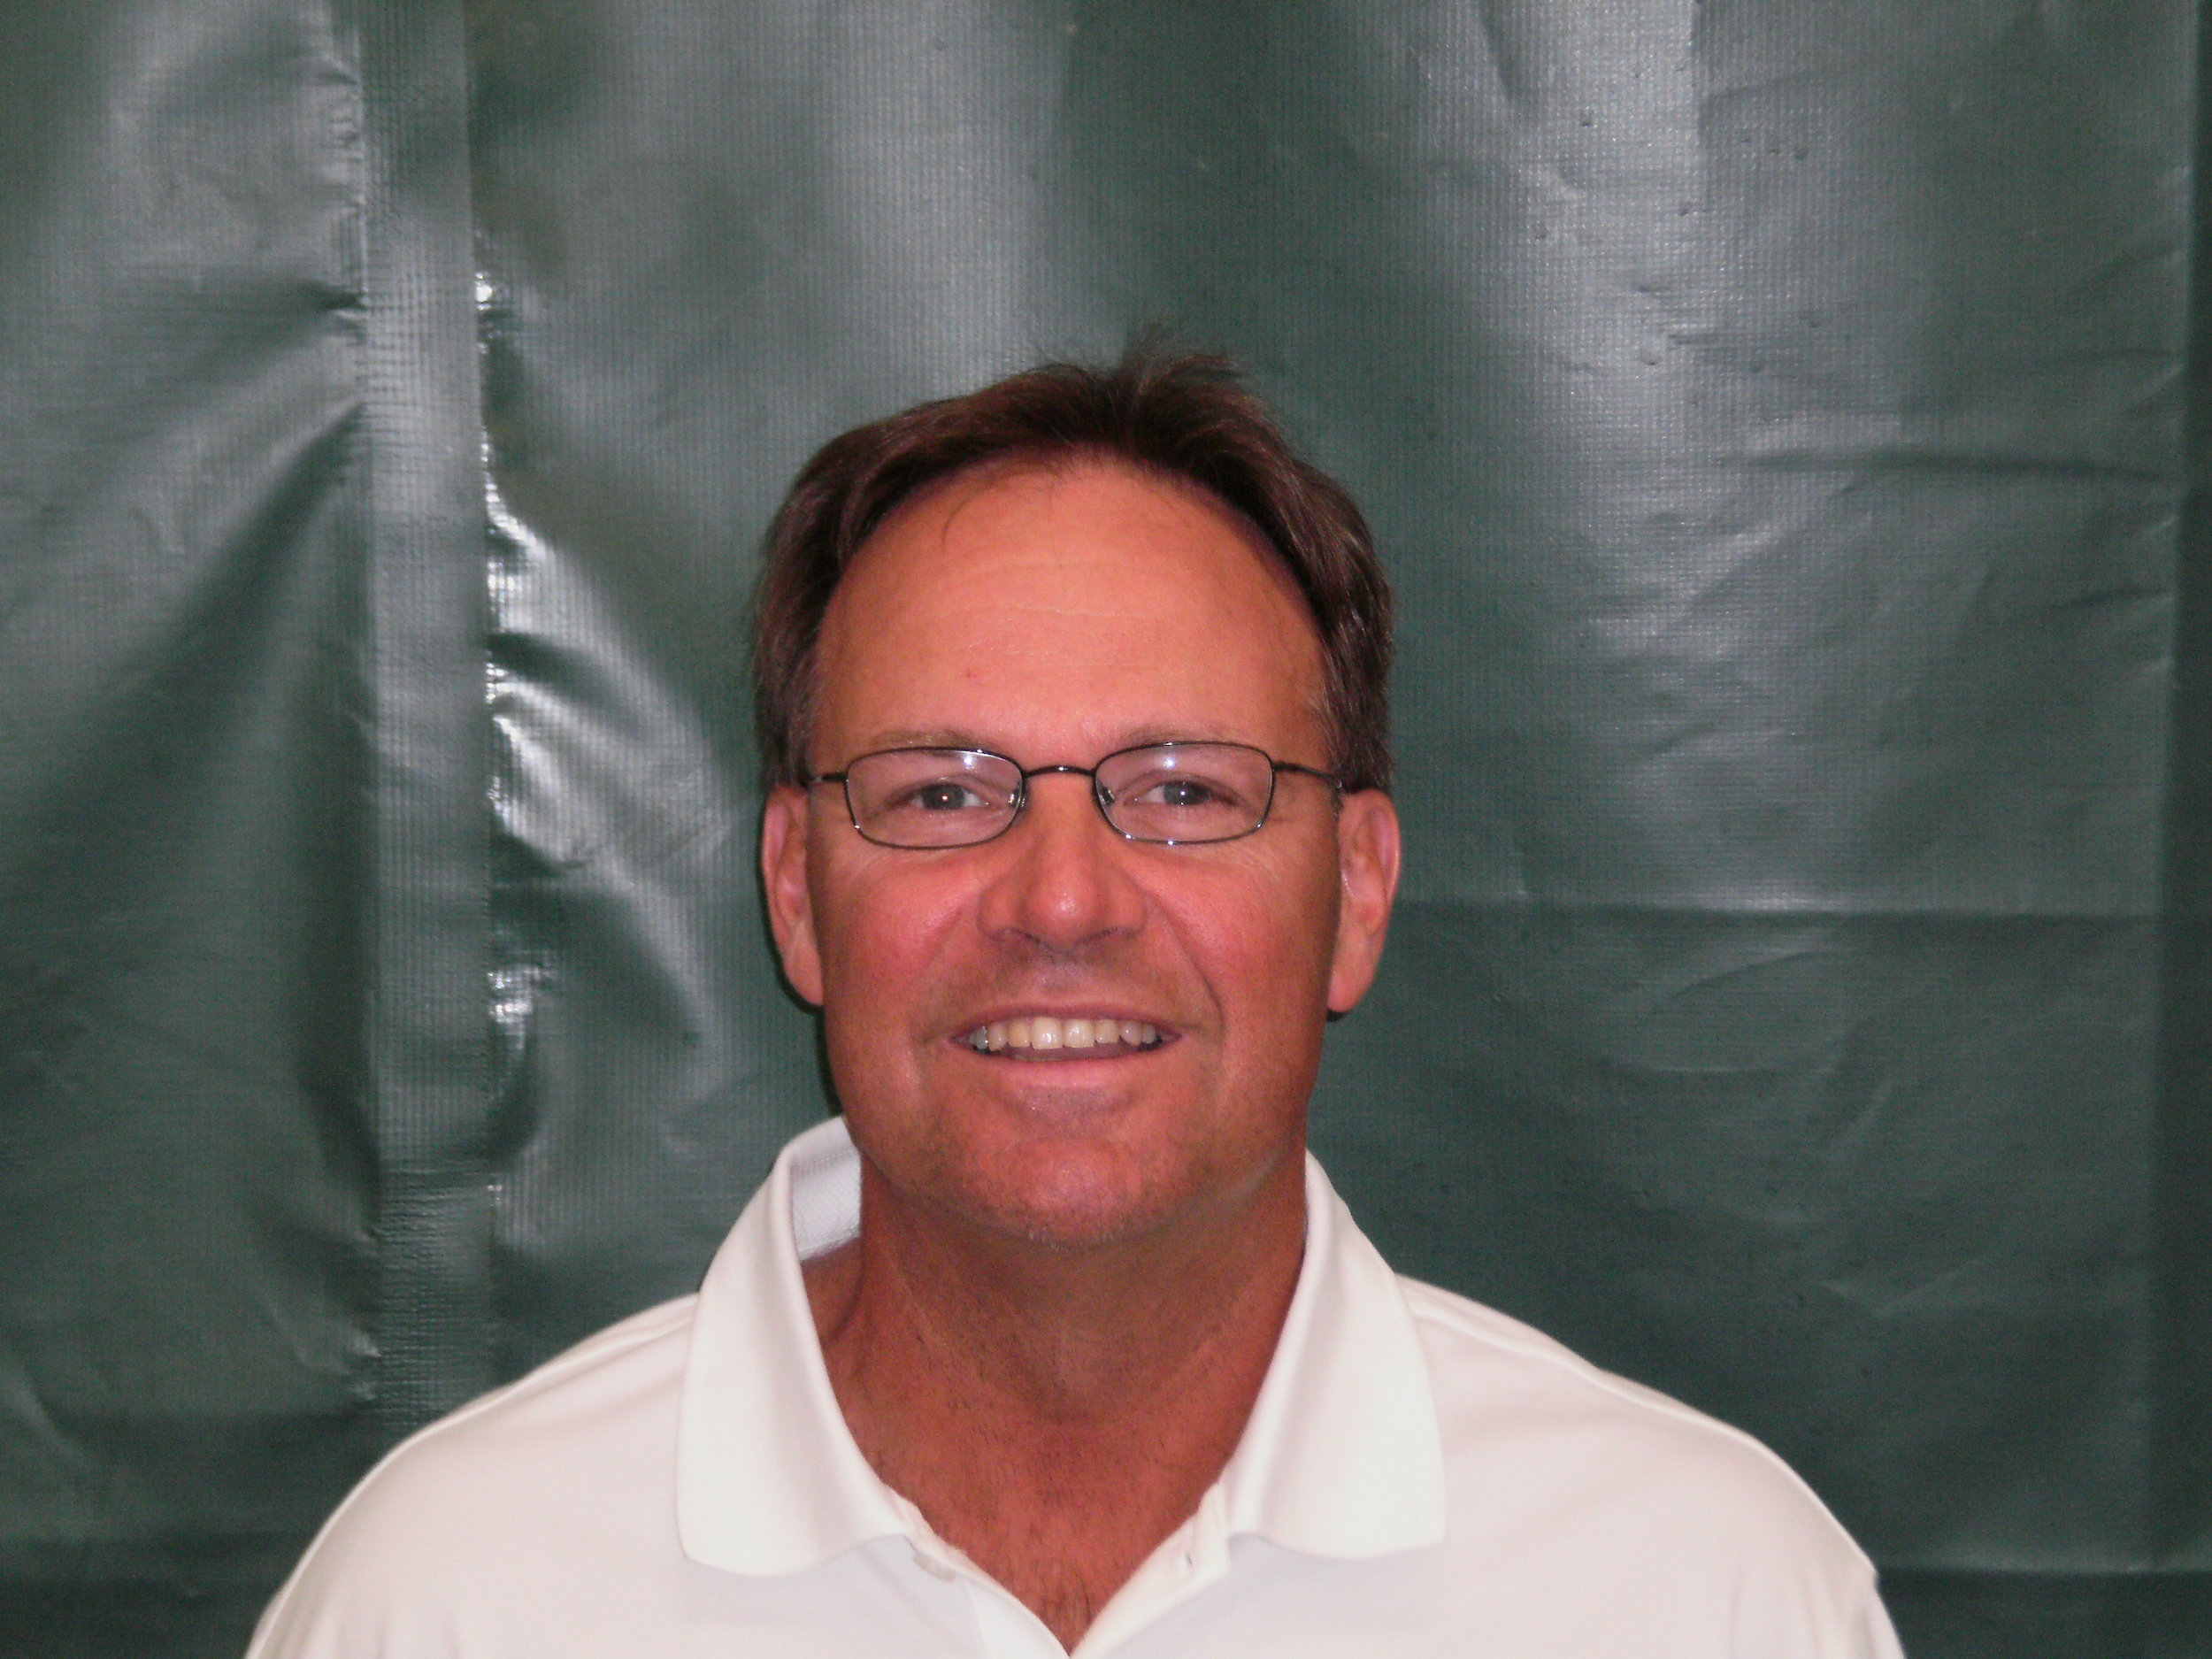 KEITH PERRON   Keith Perron has been a part of the Glastonbury Tennis Club teaching staff for over 20 years. Keith is a long standing USPTR certified professional with certifications in both junior and adult development. He is helping to introduce the quick start methodology for 10 and under players. He has worked with all levels from beginner to advanced players. His primary objective is to discover ways to motivate all participants to have fun so as to embrace the game of tennis as a lifelong activity.